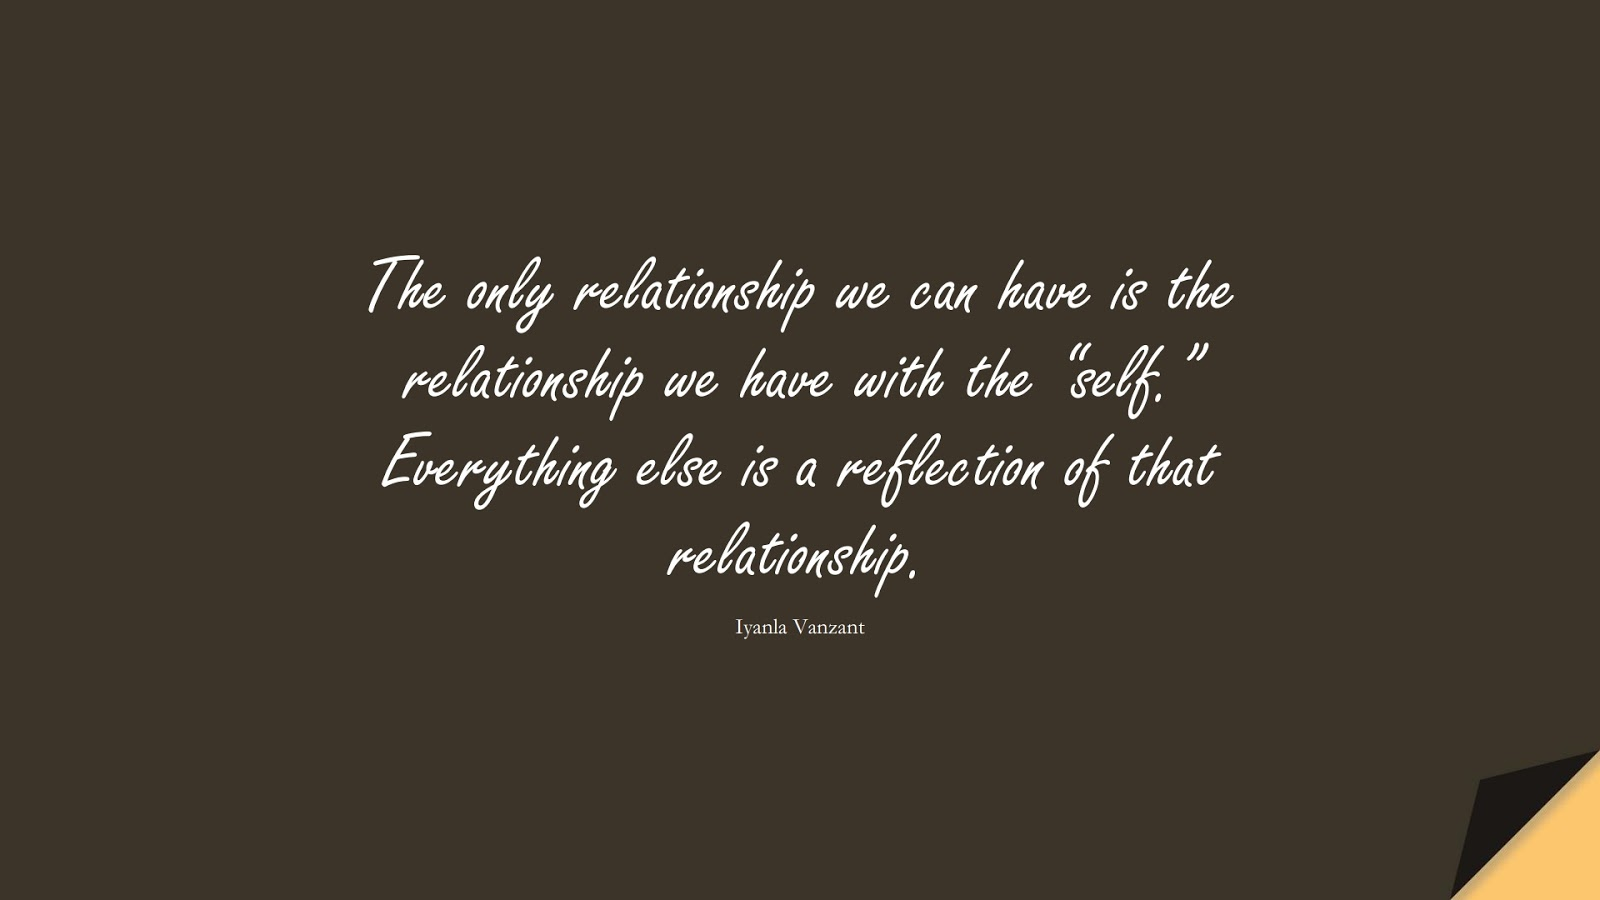 """The only relationship we can have is the relationship we have with the """"self."""" Everything else is a reflection of that relationship. (Iyanla Vanzant);  #RelationshipQuotes"""